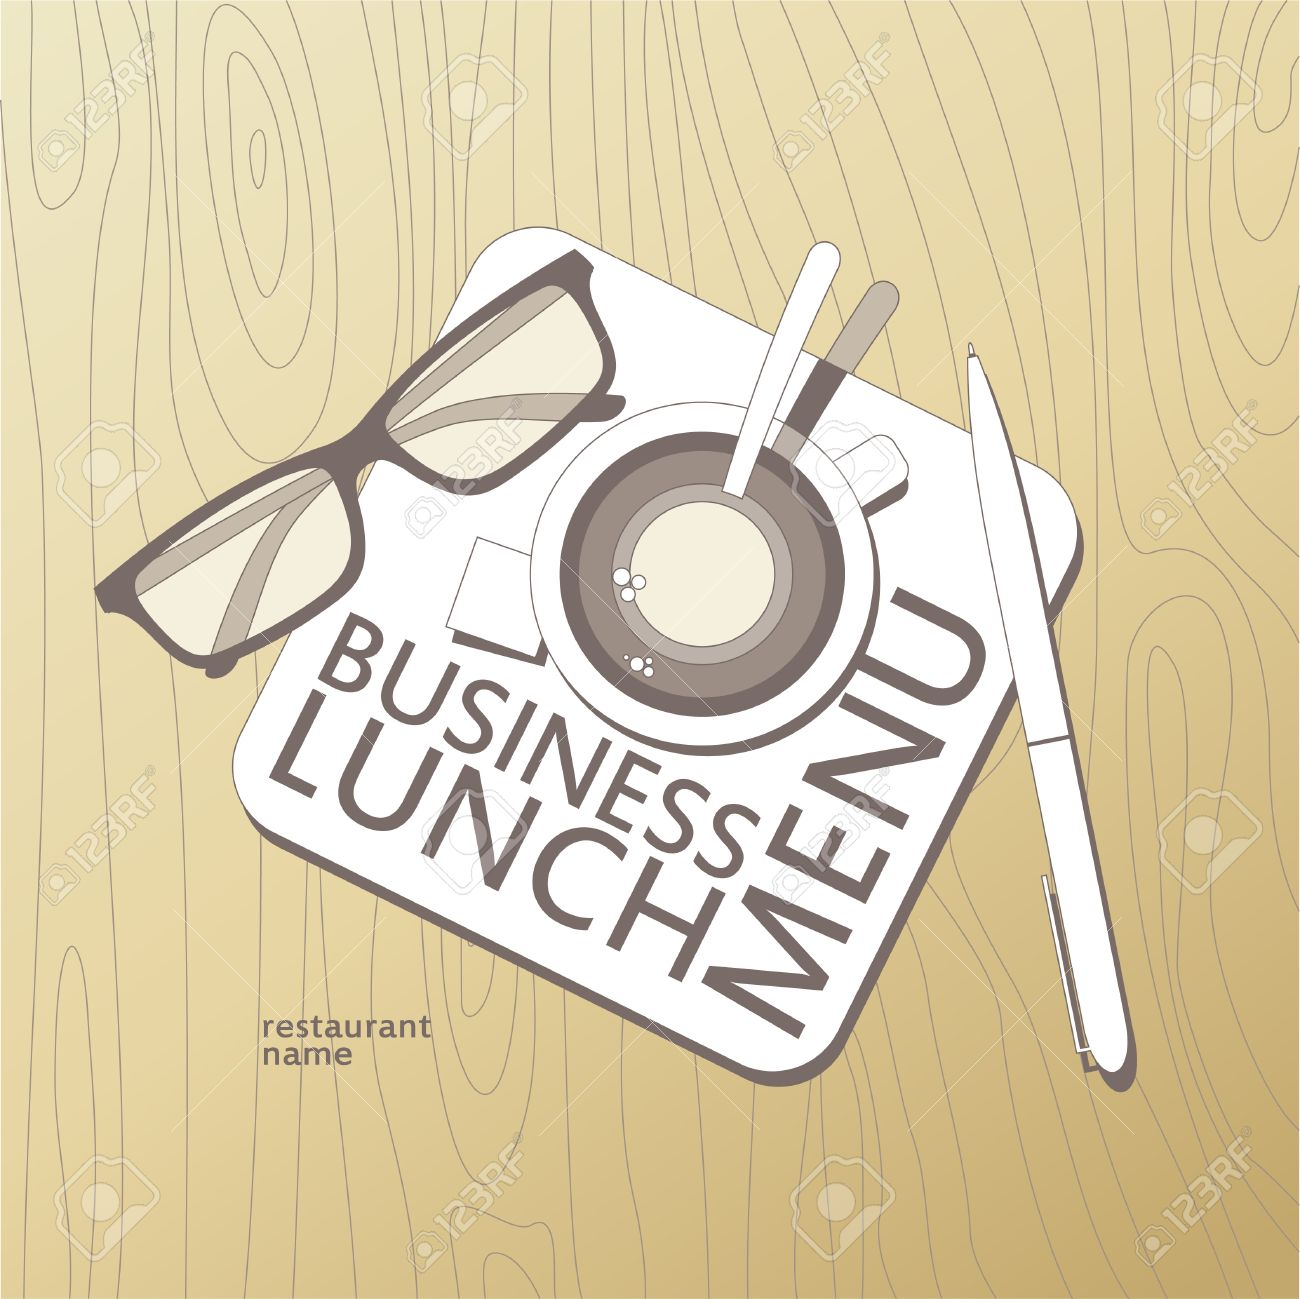 business lunch menu card design template royalty free cliparts